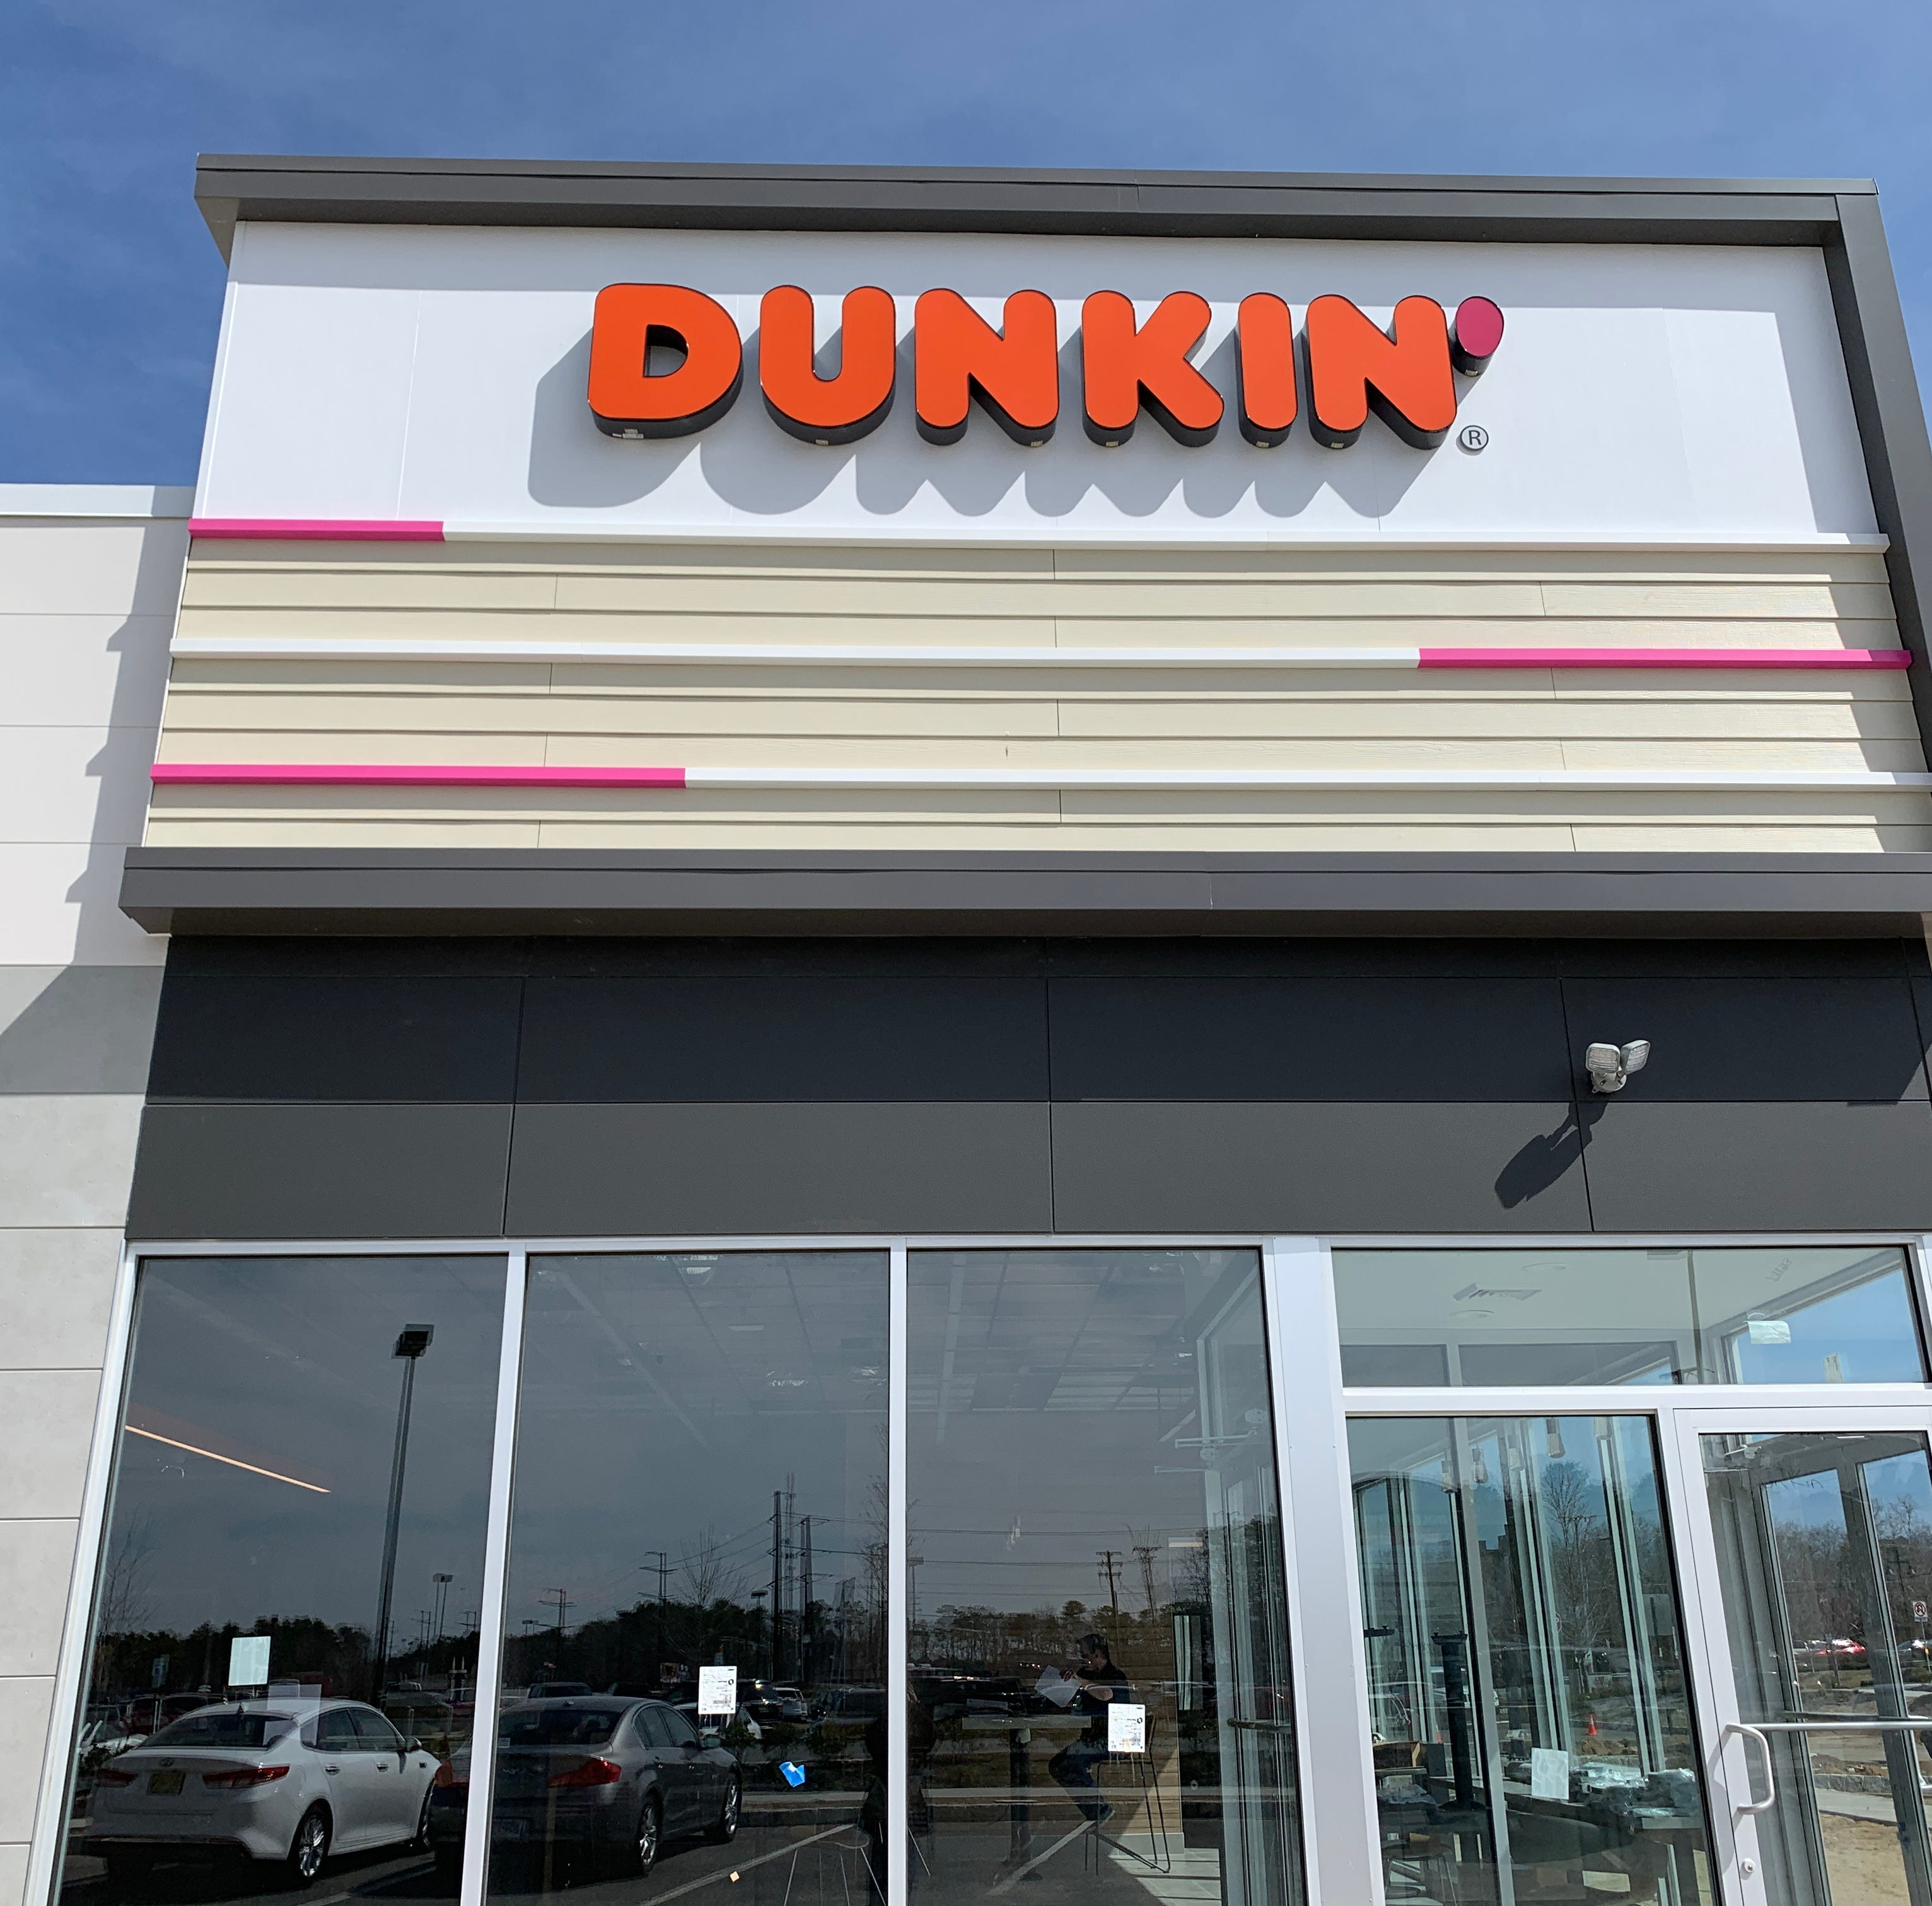 Dunkin' wants to open new location on Route 88 in Brick